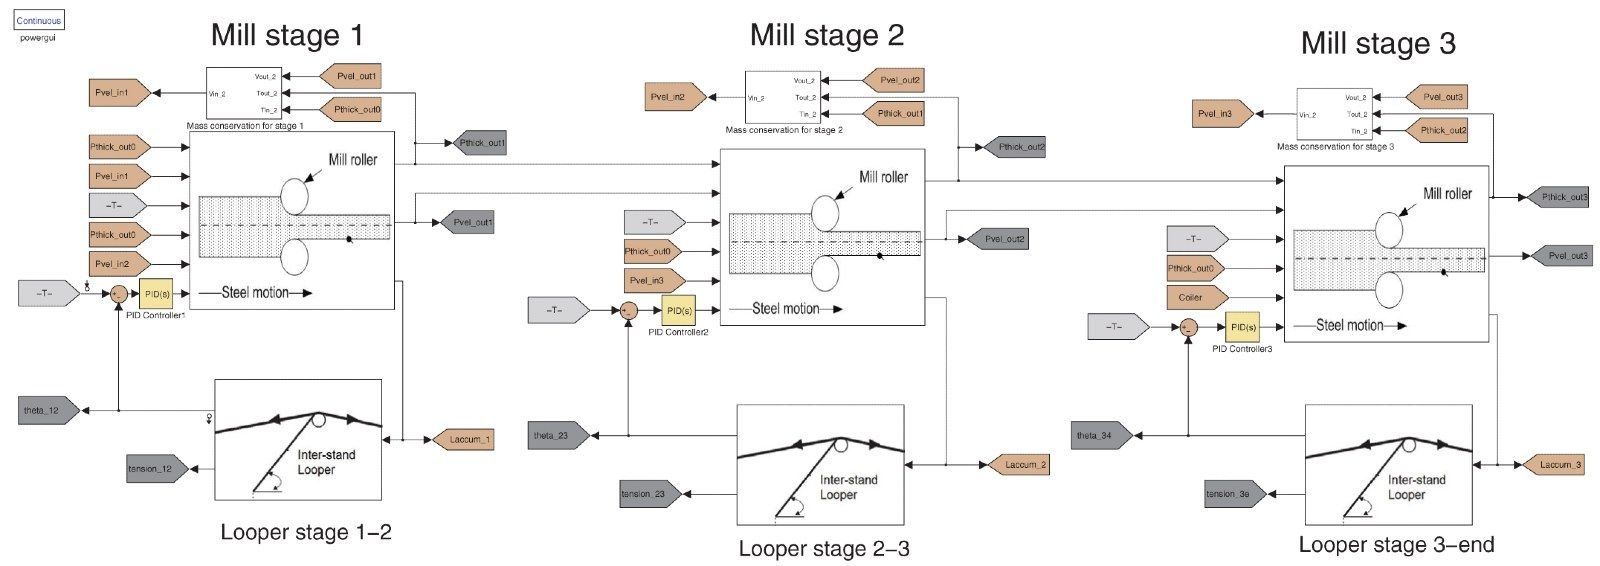 Simulink model showing multiple rolling mill stages with inter-stand looper stages